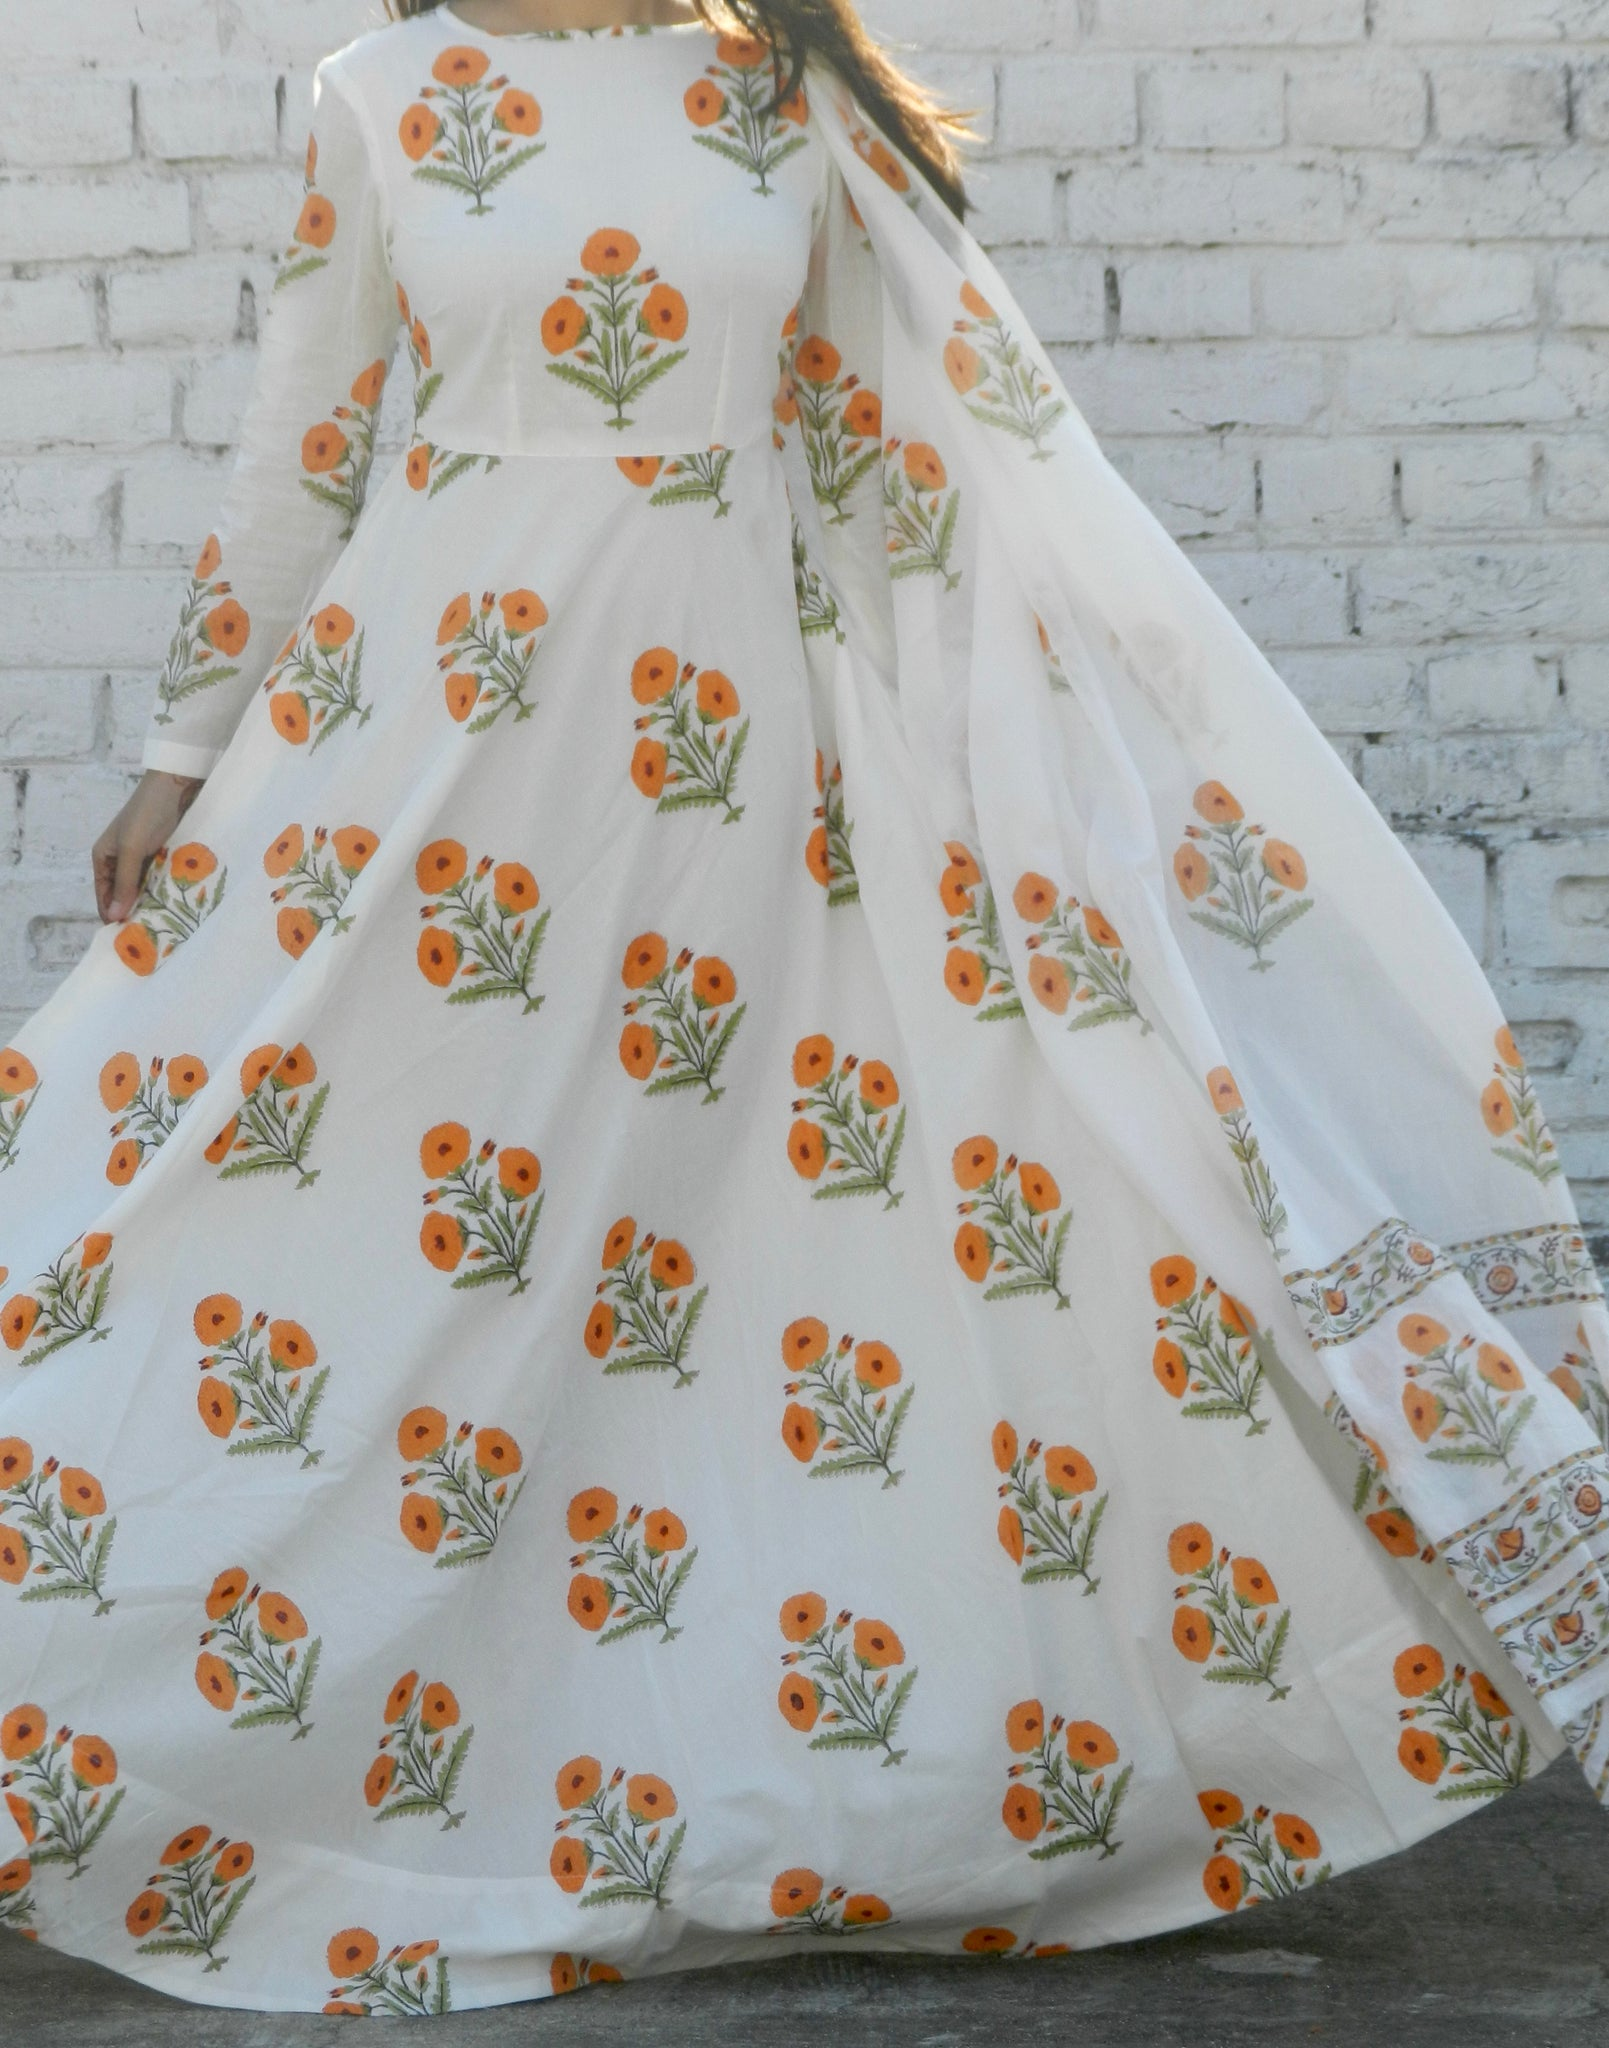 Orange Blockprint Mulmul Dupatta